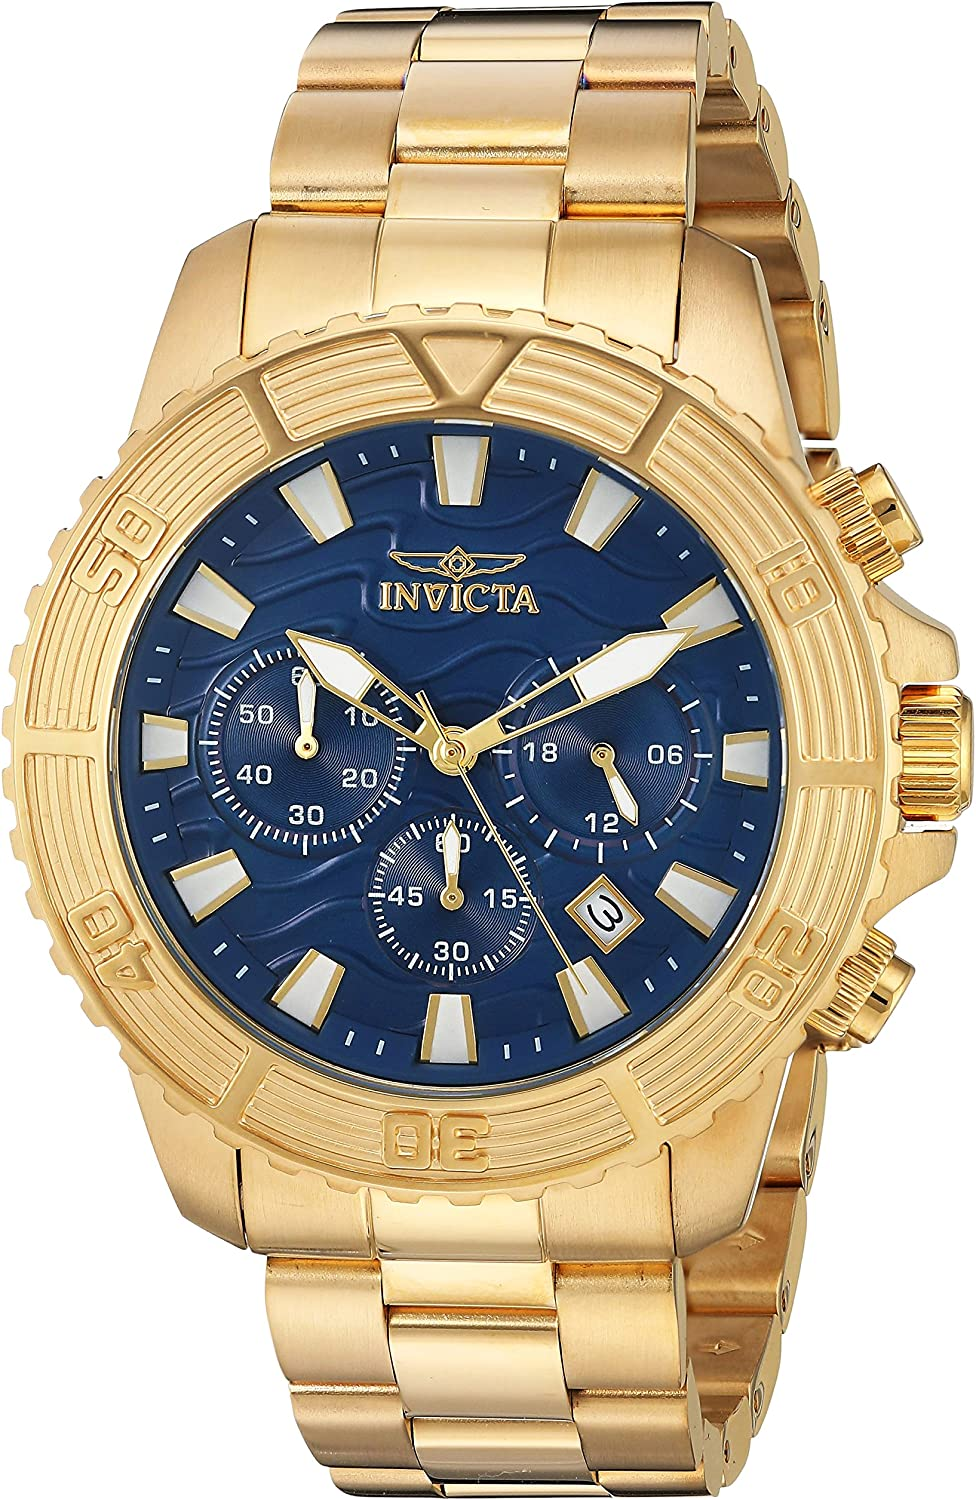 Invicta Men s Pro Diver Quartz Watch with Stainless-Steel Strap, Gold, 22 Model 24001